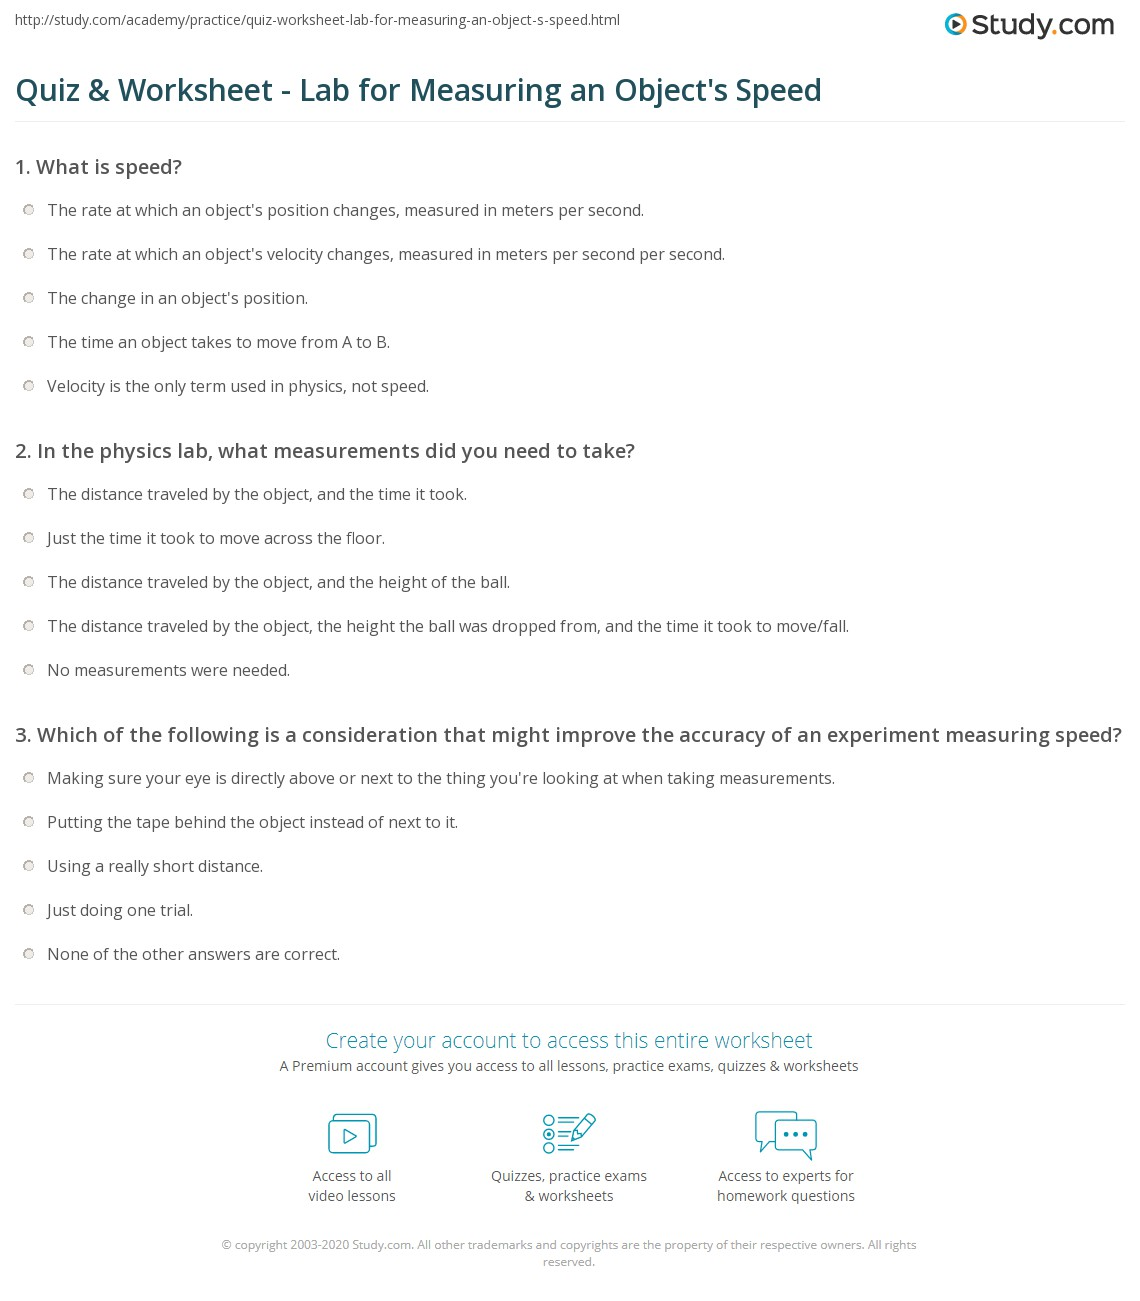 Quiz Worksheet Lab for Measuring an Objects Speed – Motion and Speed Worksheet